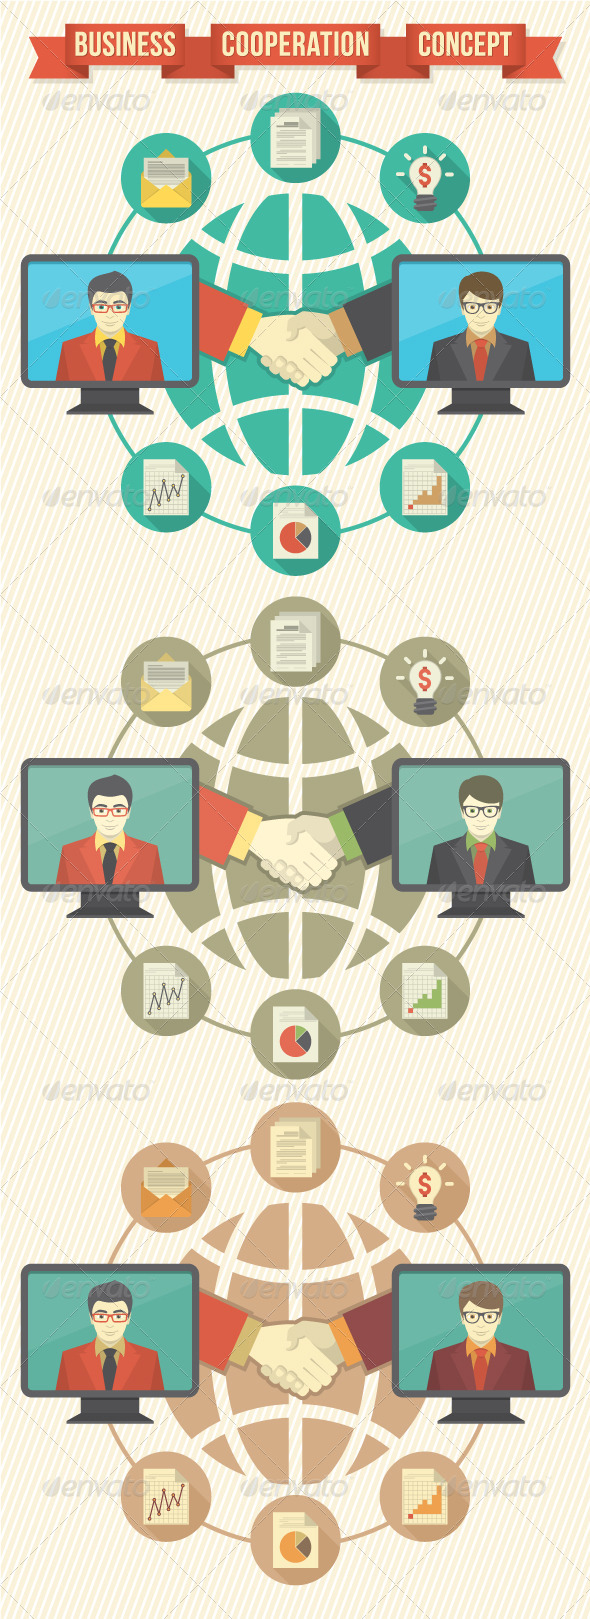 GraphicRiver Business Cooperation Concept 5900401